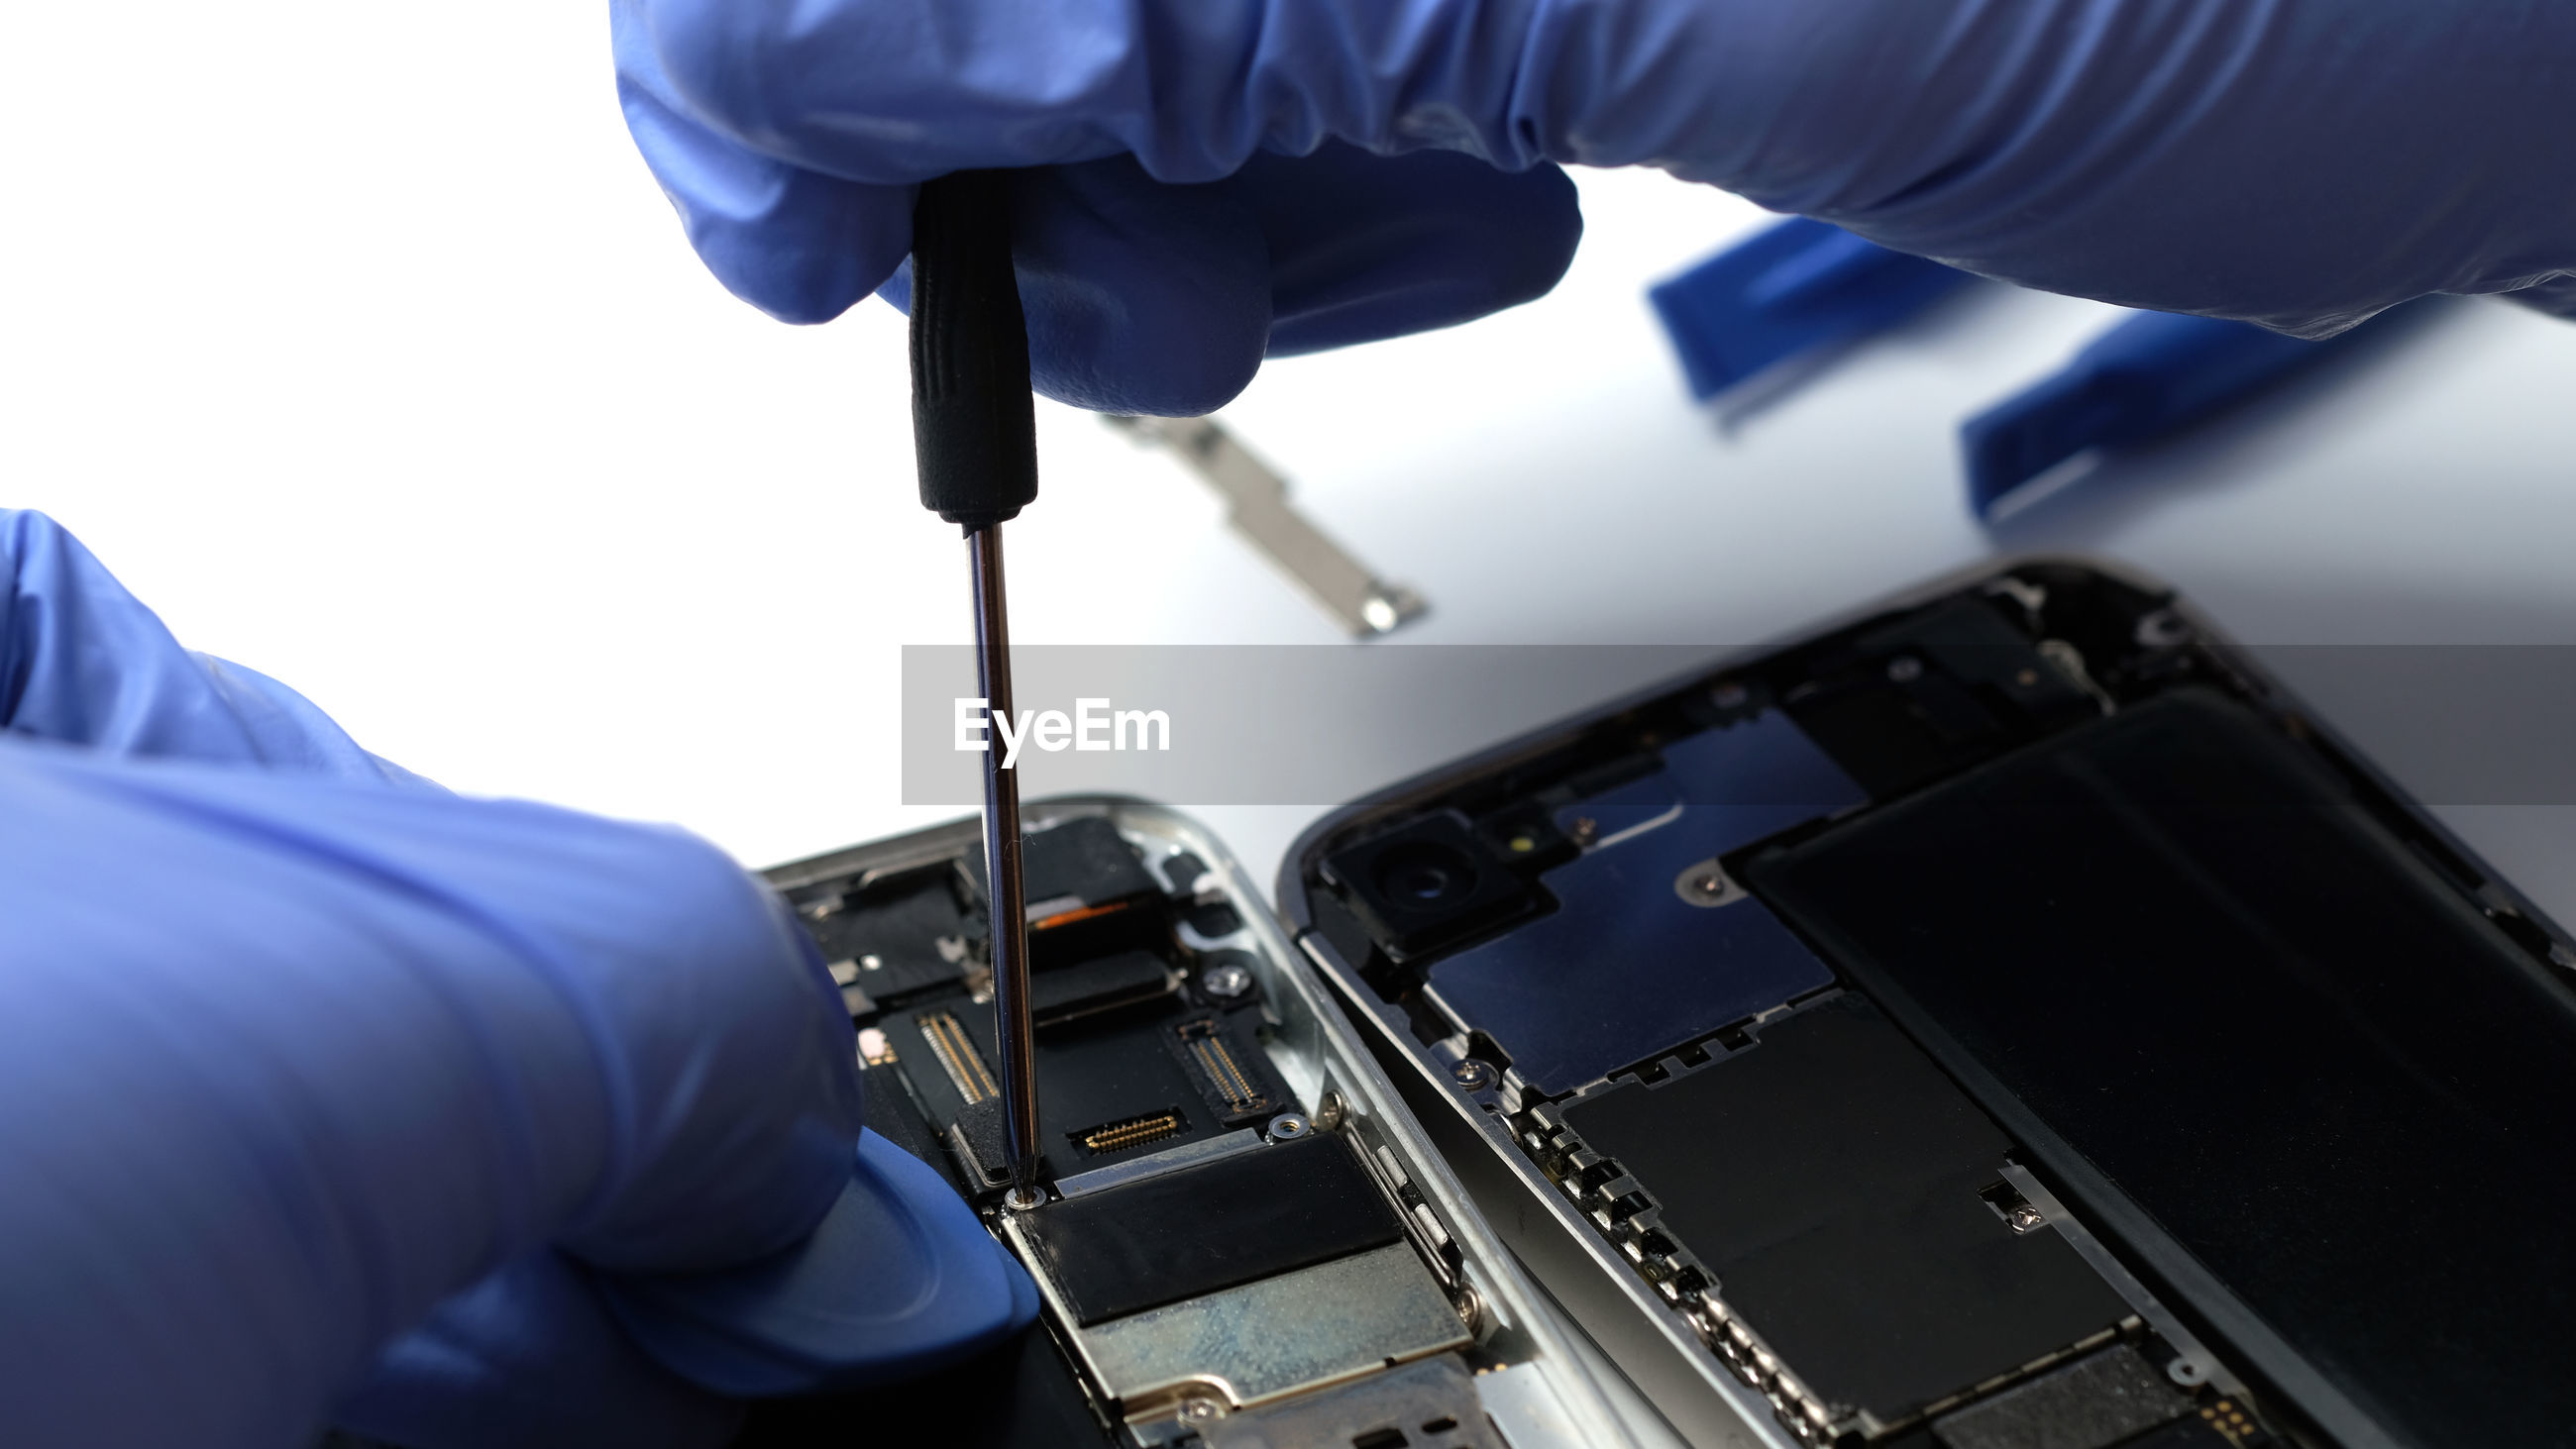 Technician repairing the smartphone's motherboard in the lab with copy space to upgrade technology.